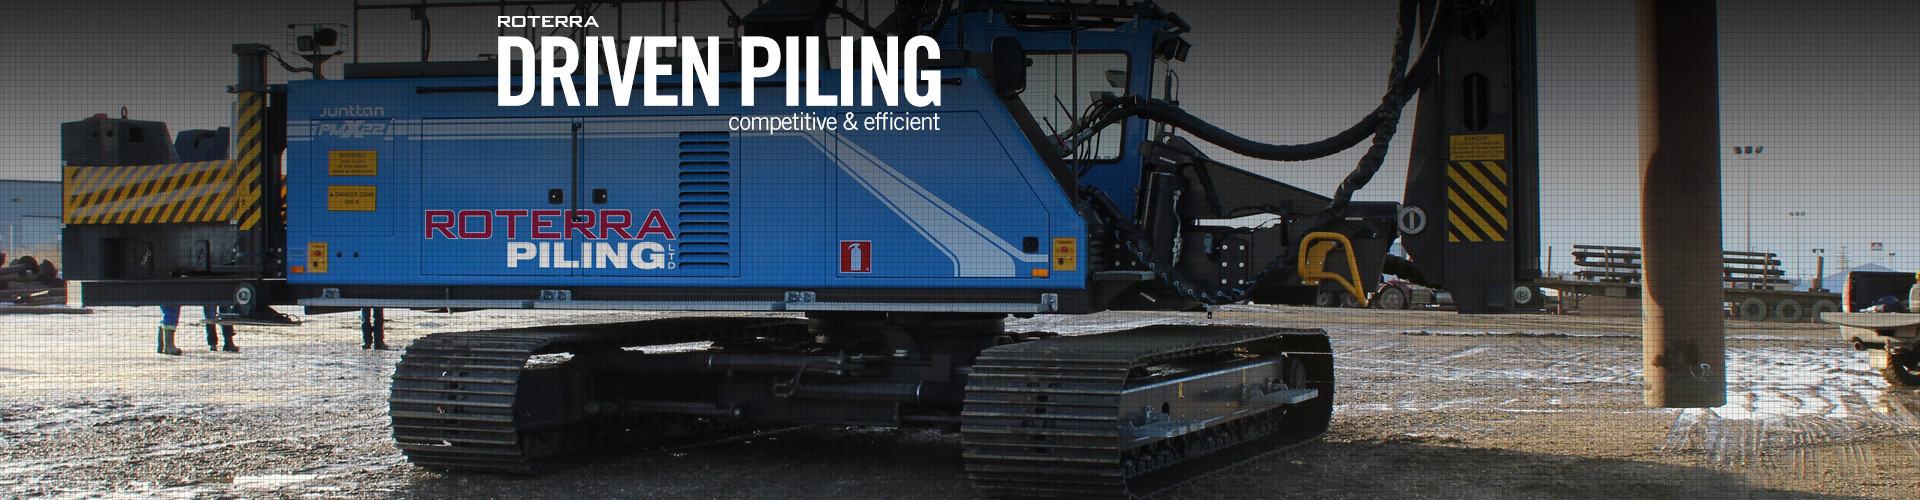 Driven Piling   Roterra Piling   Piling Solutions   Canada